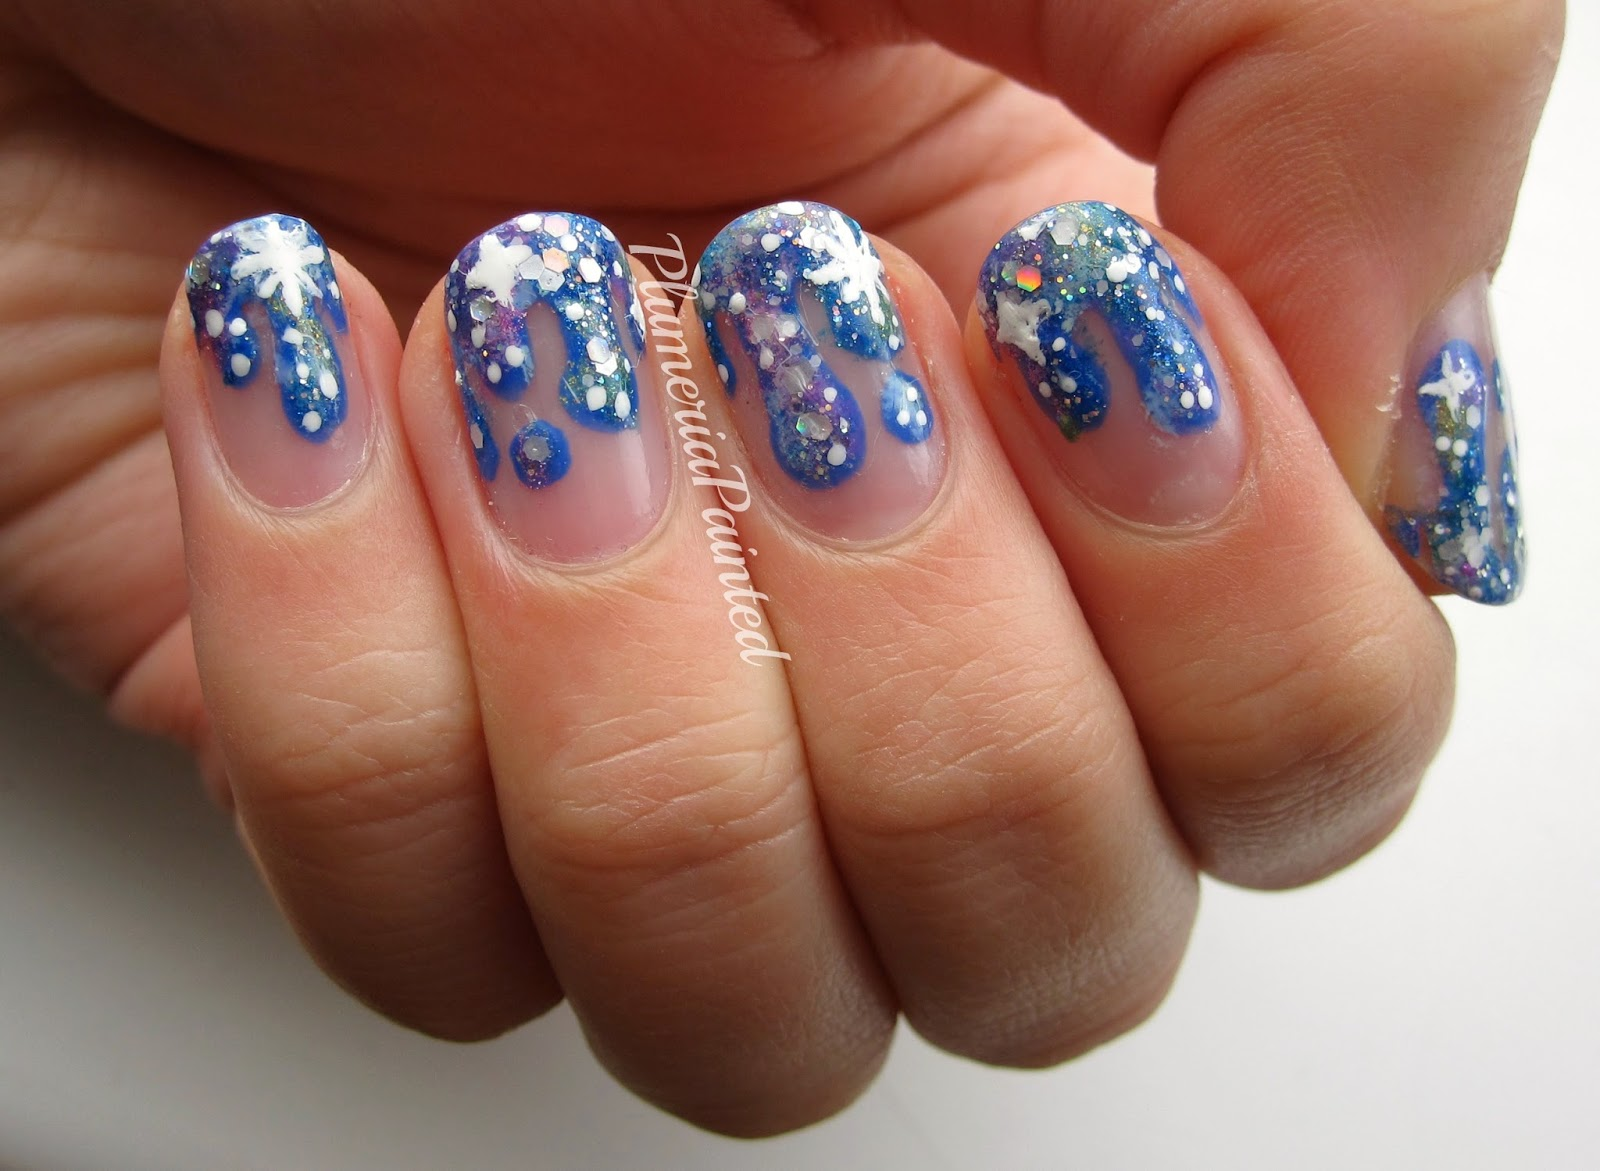 PlumeriaPainted: Dripping Galaxy Nail Art